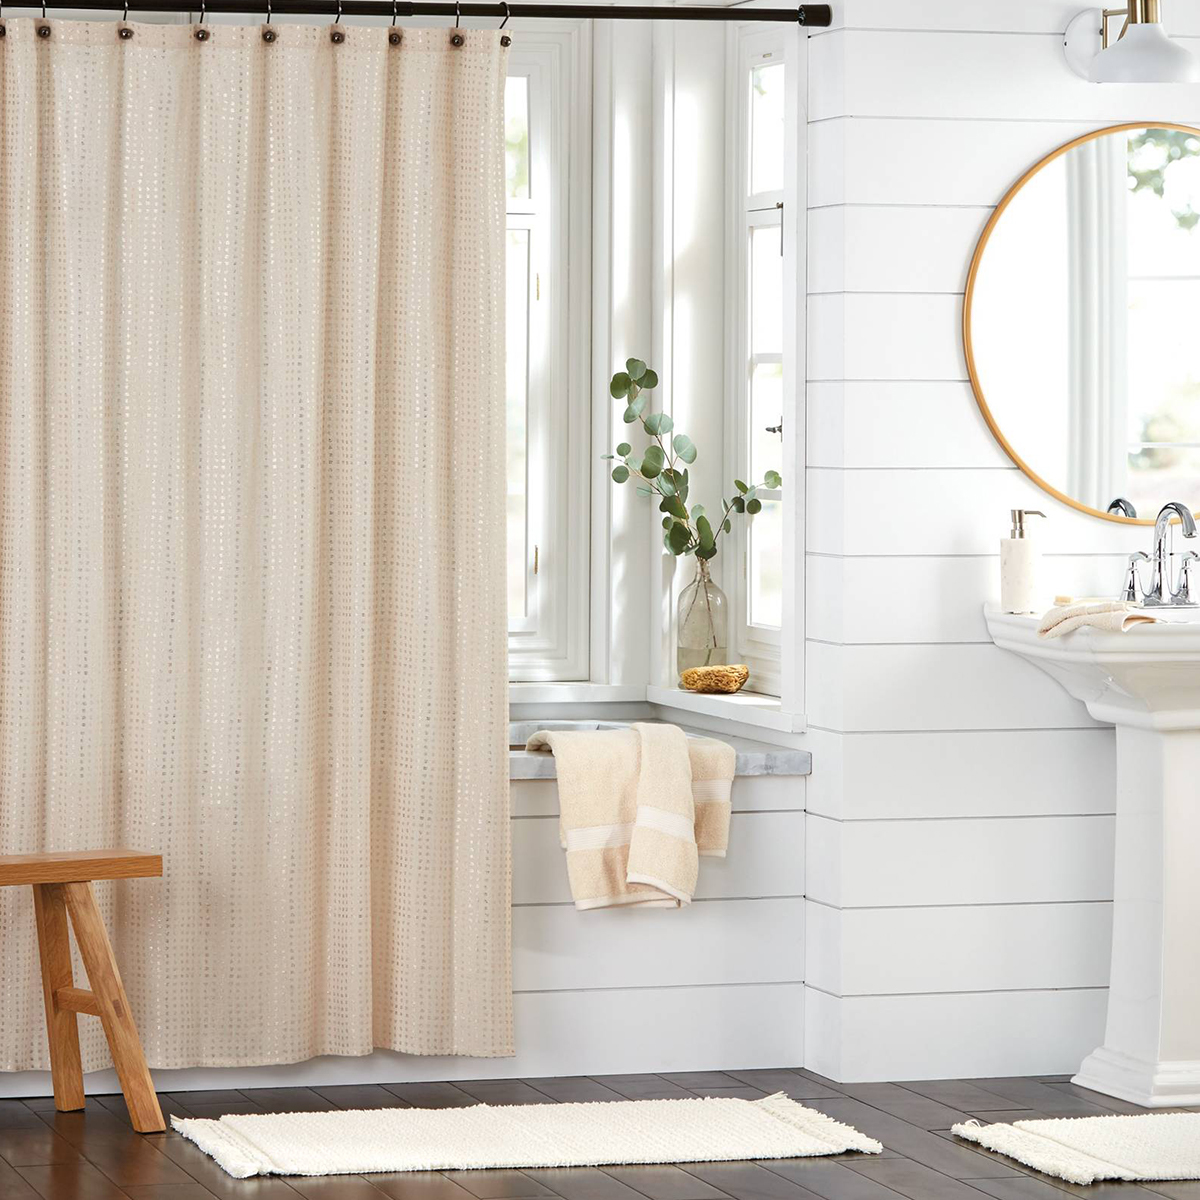 This metallic gold curtain is an easy way to update your bathroom without being overbearing. photo